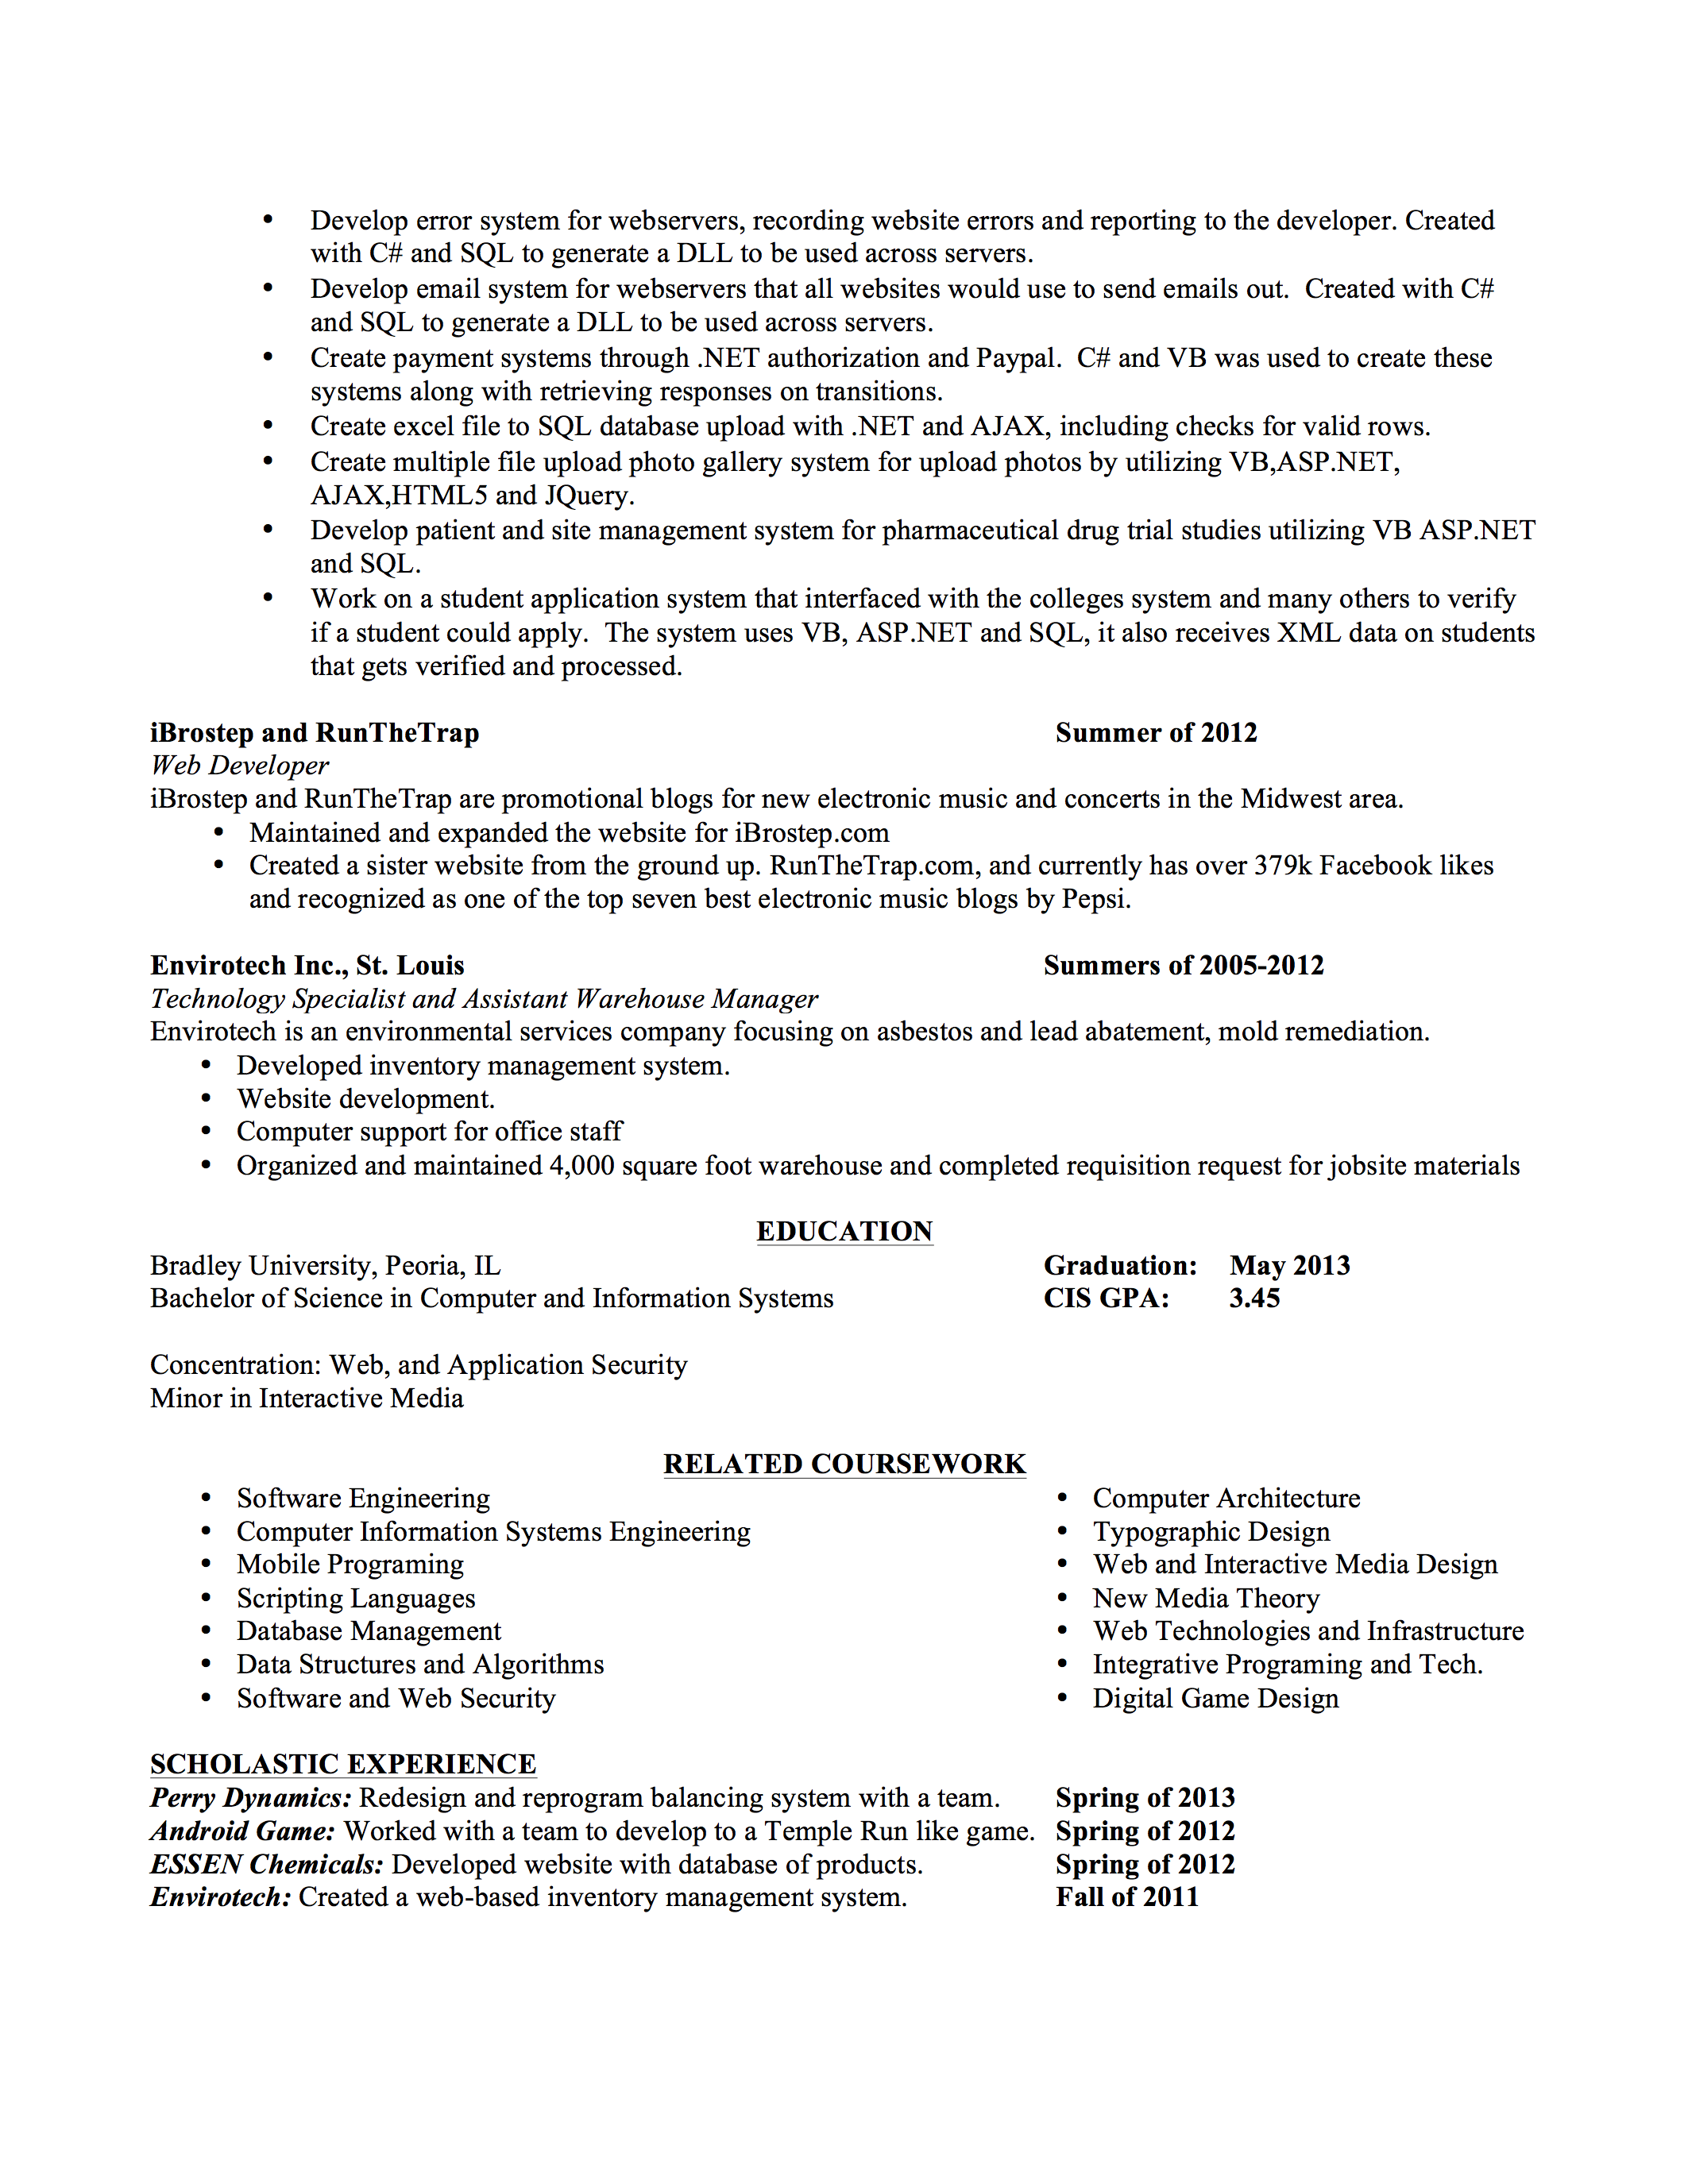 sample resume for web